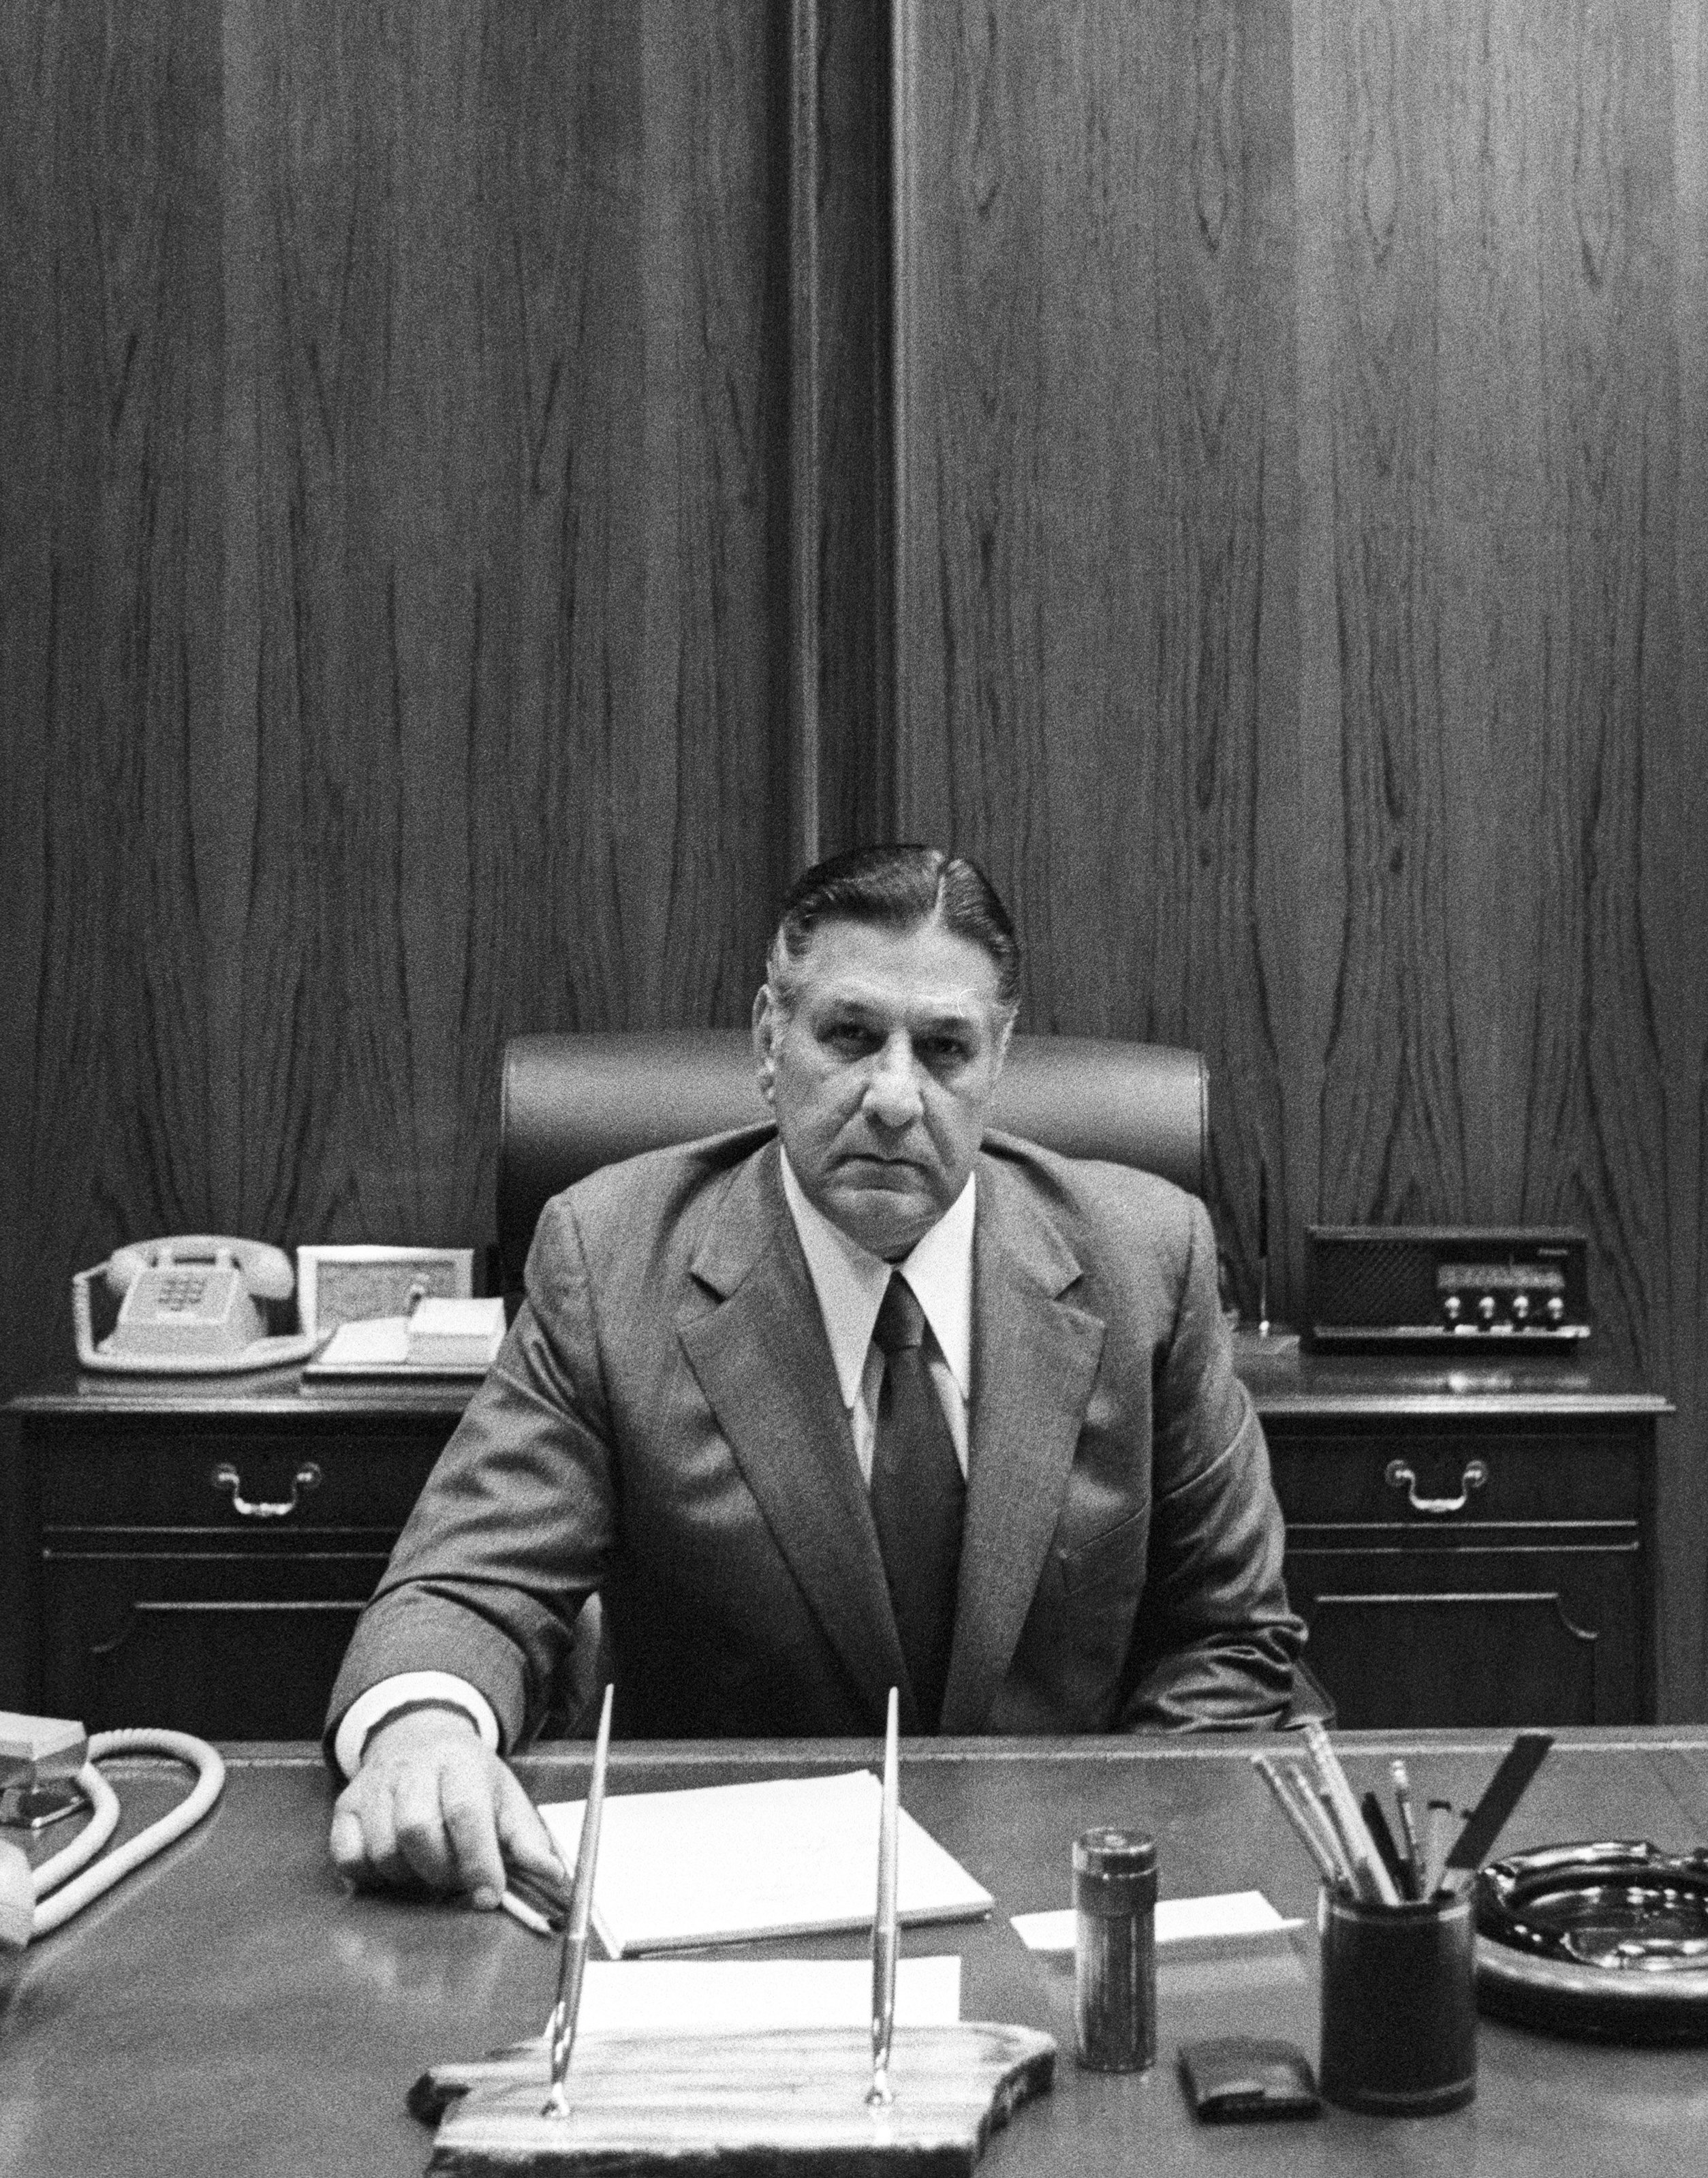 Mayor Frank Rizzo poses for a portrait on Jan. 3, 1977 in Philadelphia, Pennsylvania.